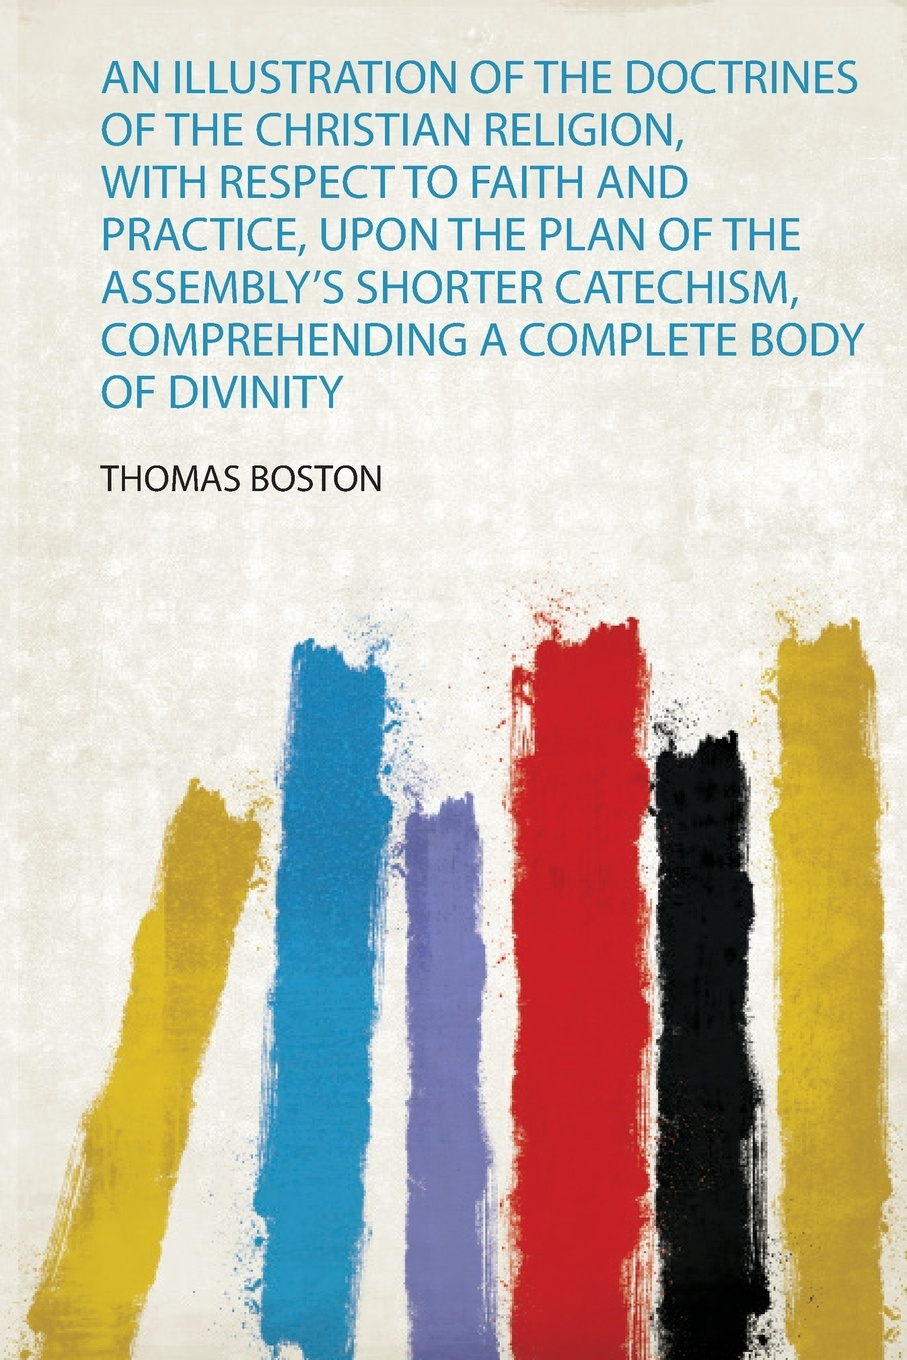 An Illustration of the Doctrines of the Christian Religion, With Respect to Faith and Practice, Upon the Plan of the Assembly's Shorter Catechism, Comprehending a Complete Body of Divinity thomas boston an illustration of the doctrines of the christian religion with respect to faith and practice